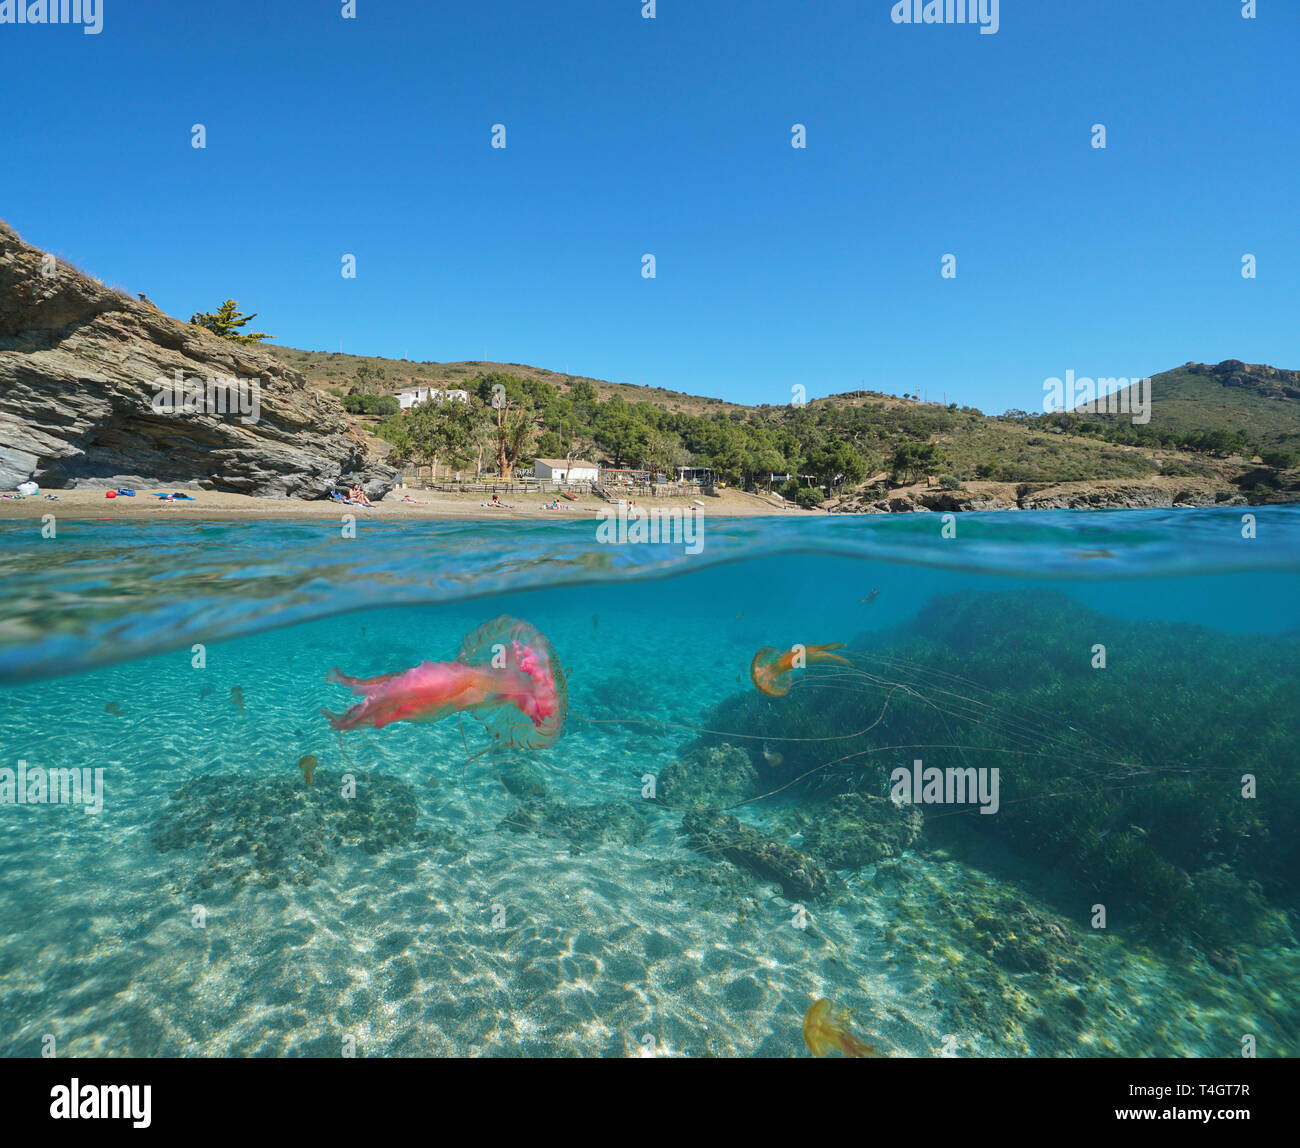 Spain Mediterranean coast with jellyfish underwater, Roses, Costa Brava, Catalonia, split view half over and under water Stock Photo